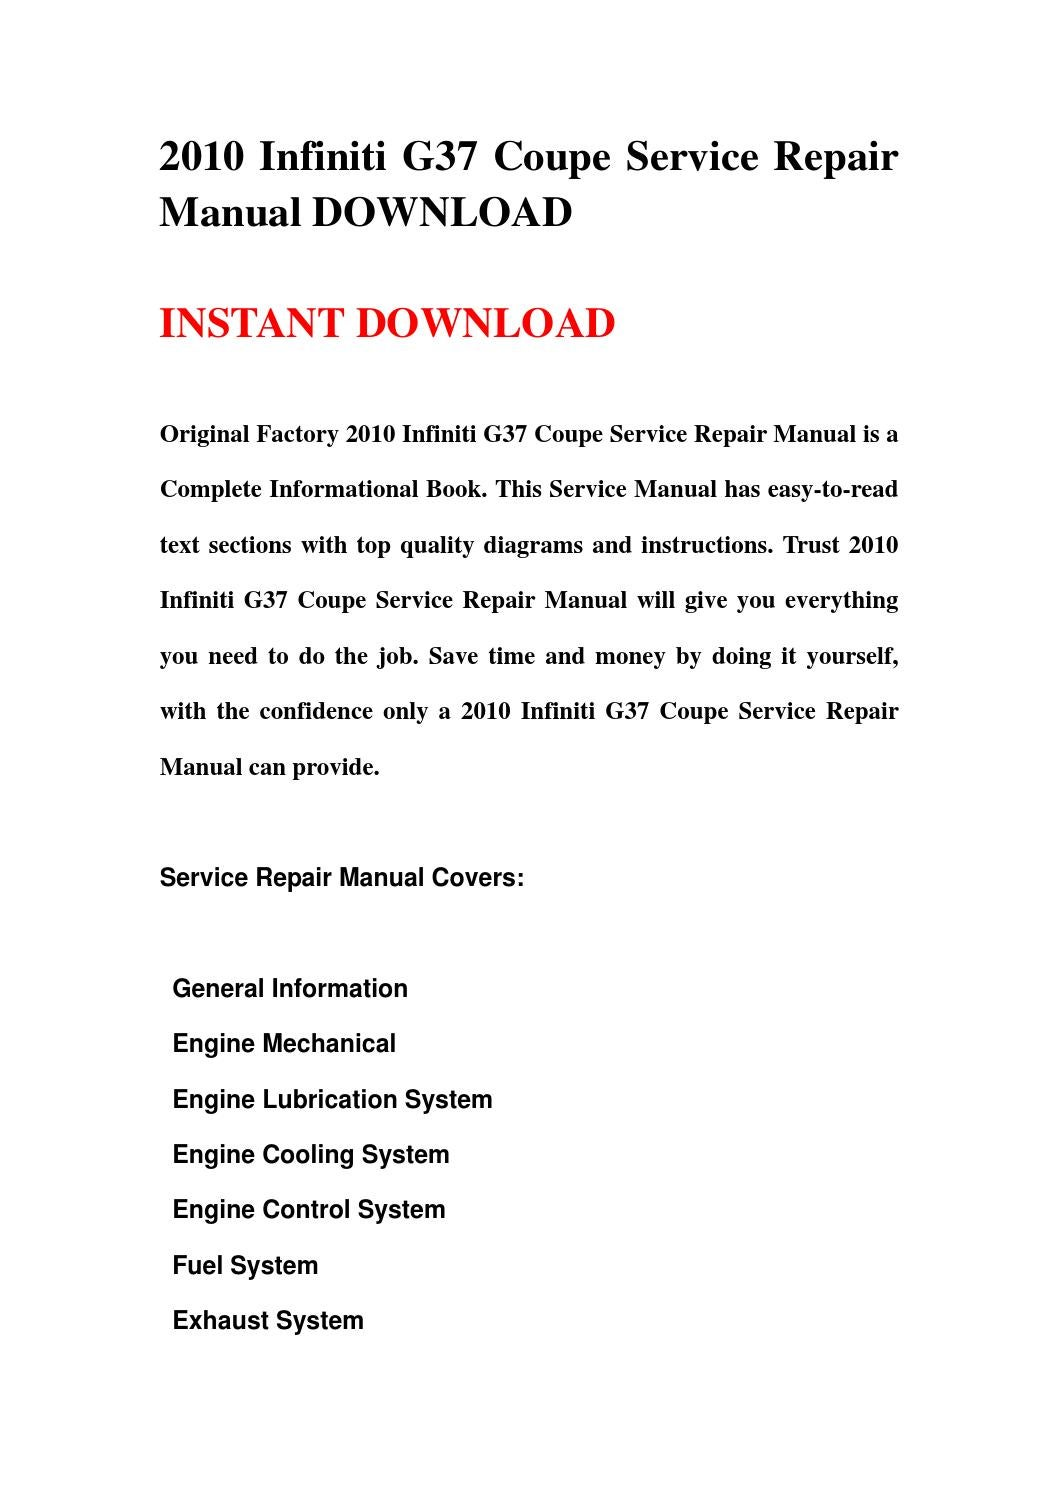 2010 infiniti g37 coupe service repair manual download by repairman rh issuu com infiniti g37 repair manual infiniti g37 service manual